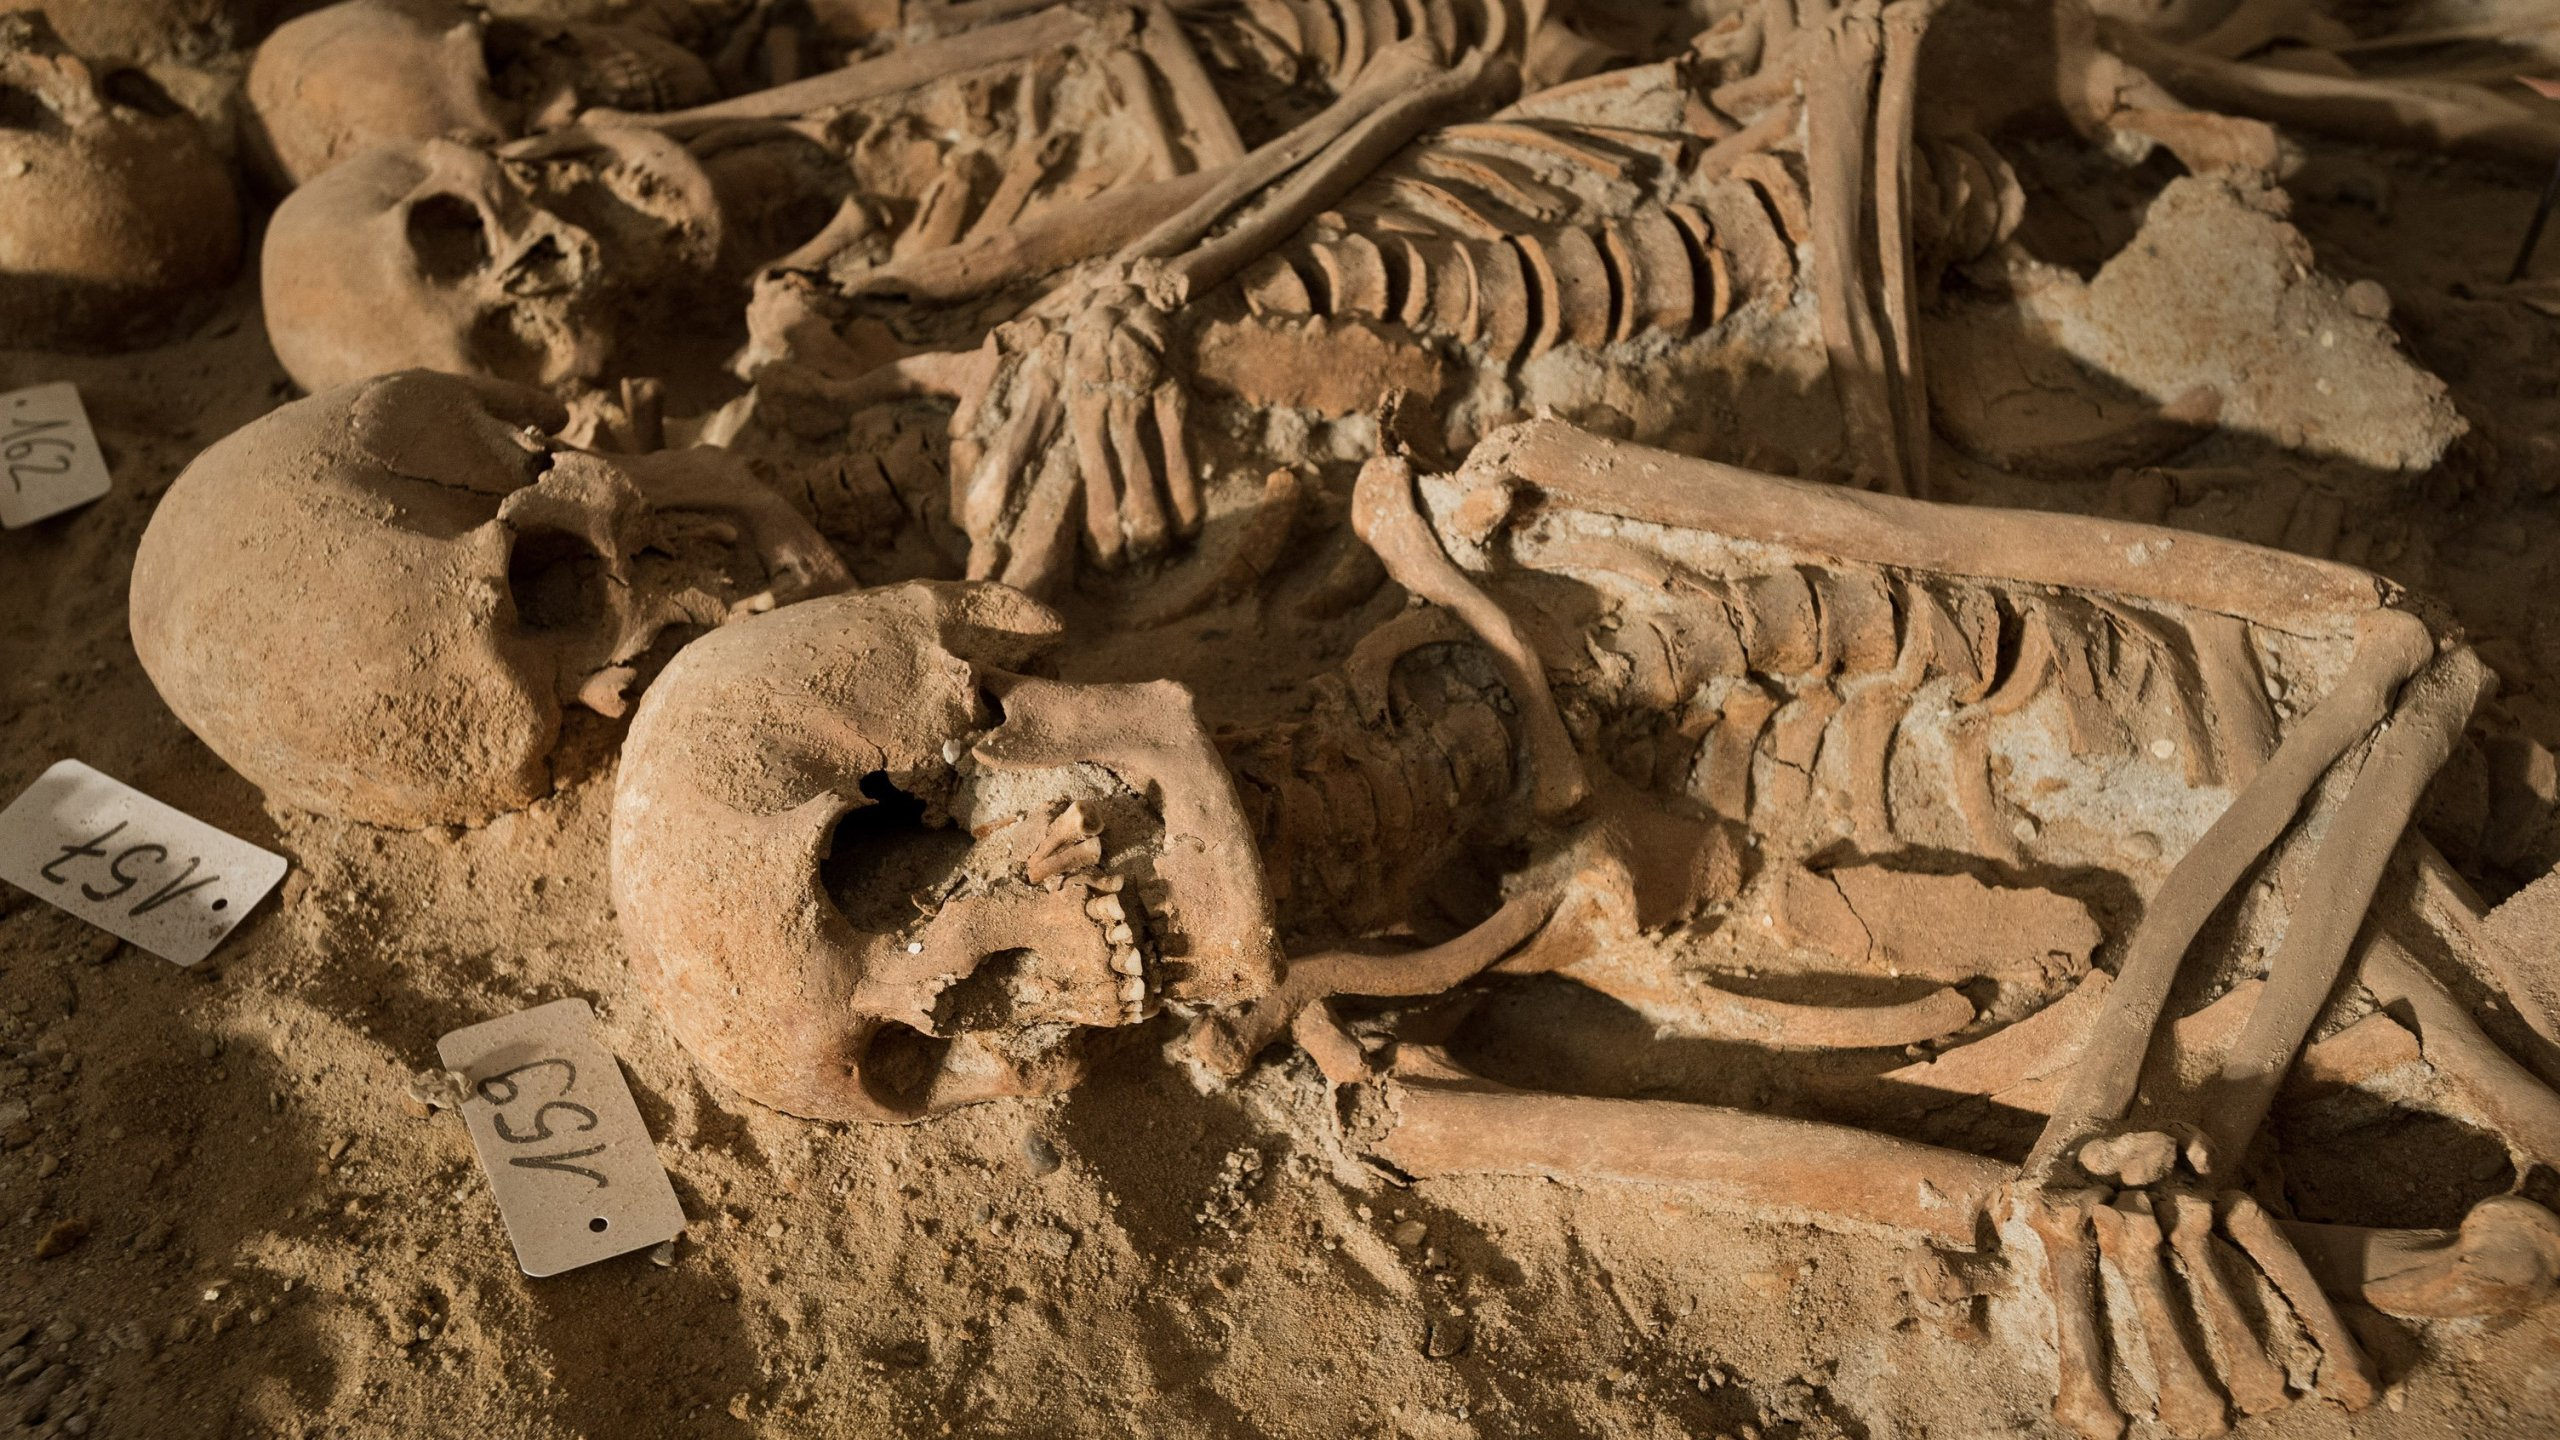 Workers digging underneath a Paris supermarket found as many as 200 skeletons. The skeletons were found as workers were doing renovations to the store in January, 2015. (Photo: CNN)